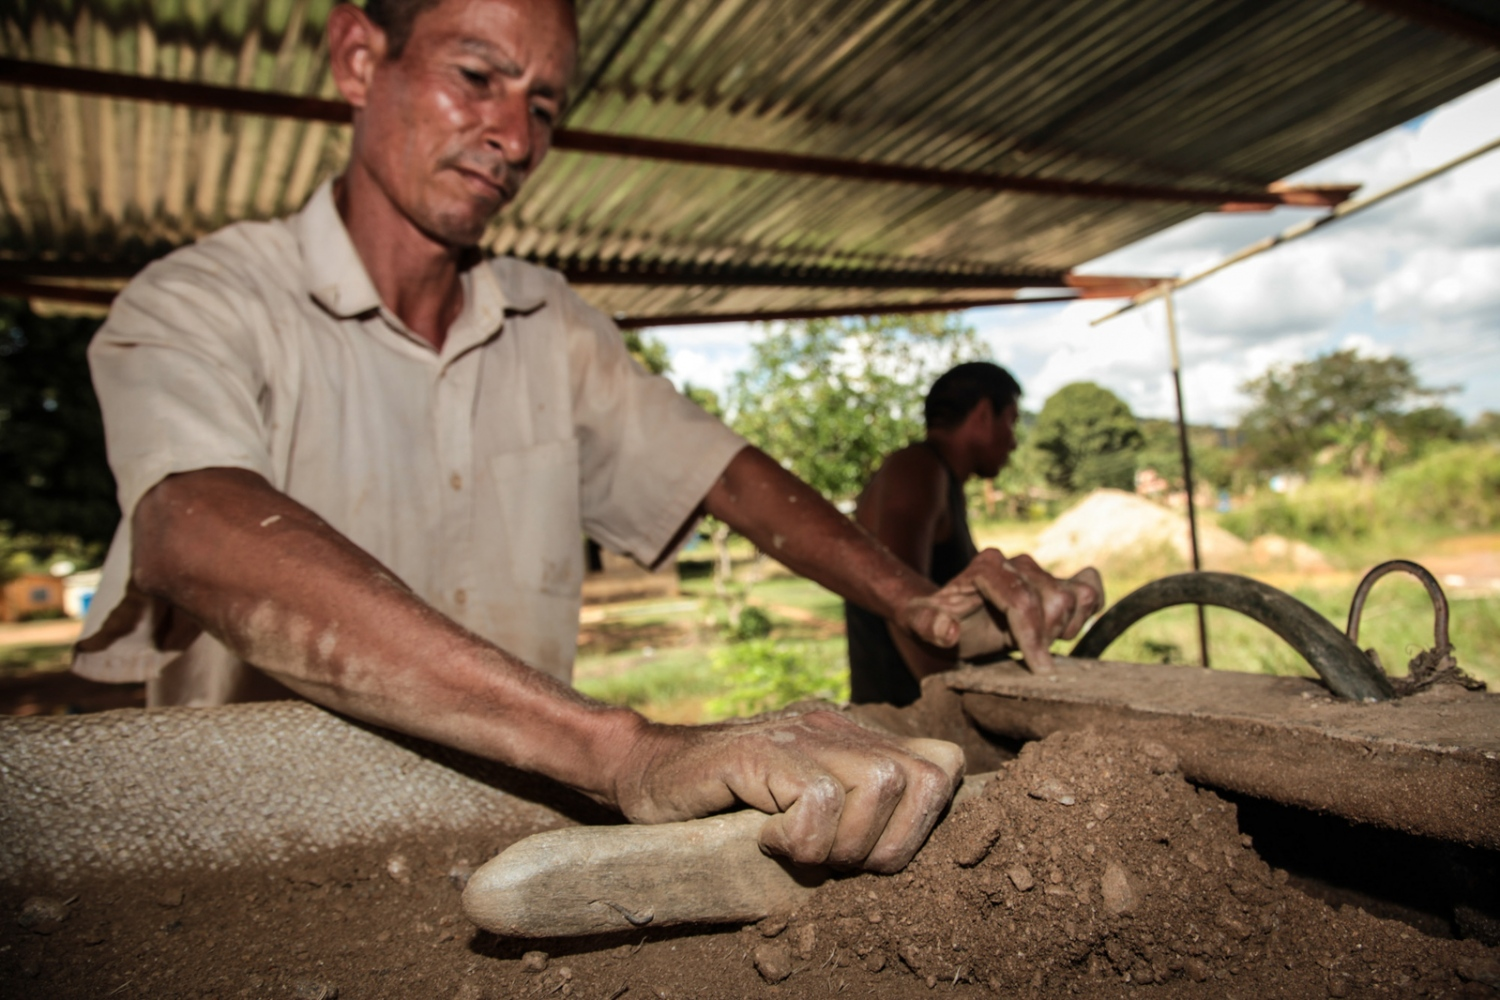 Martin comes from Colombia to work in the gold mines of Callao .